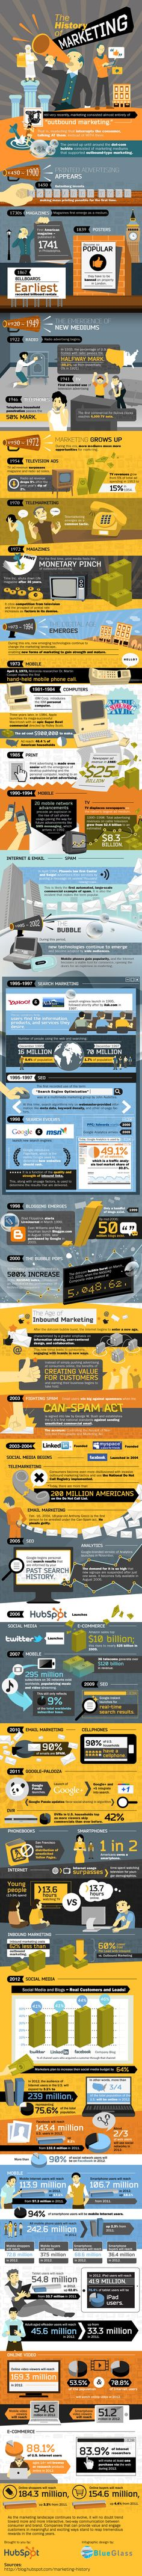 History of #marketing... it has changed a lot.